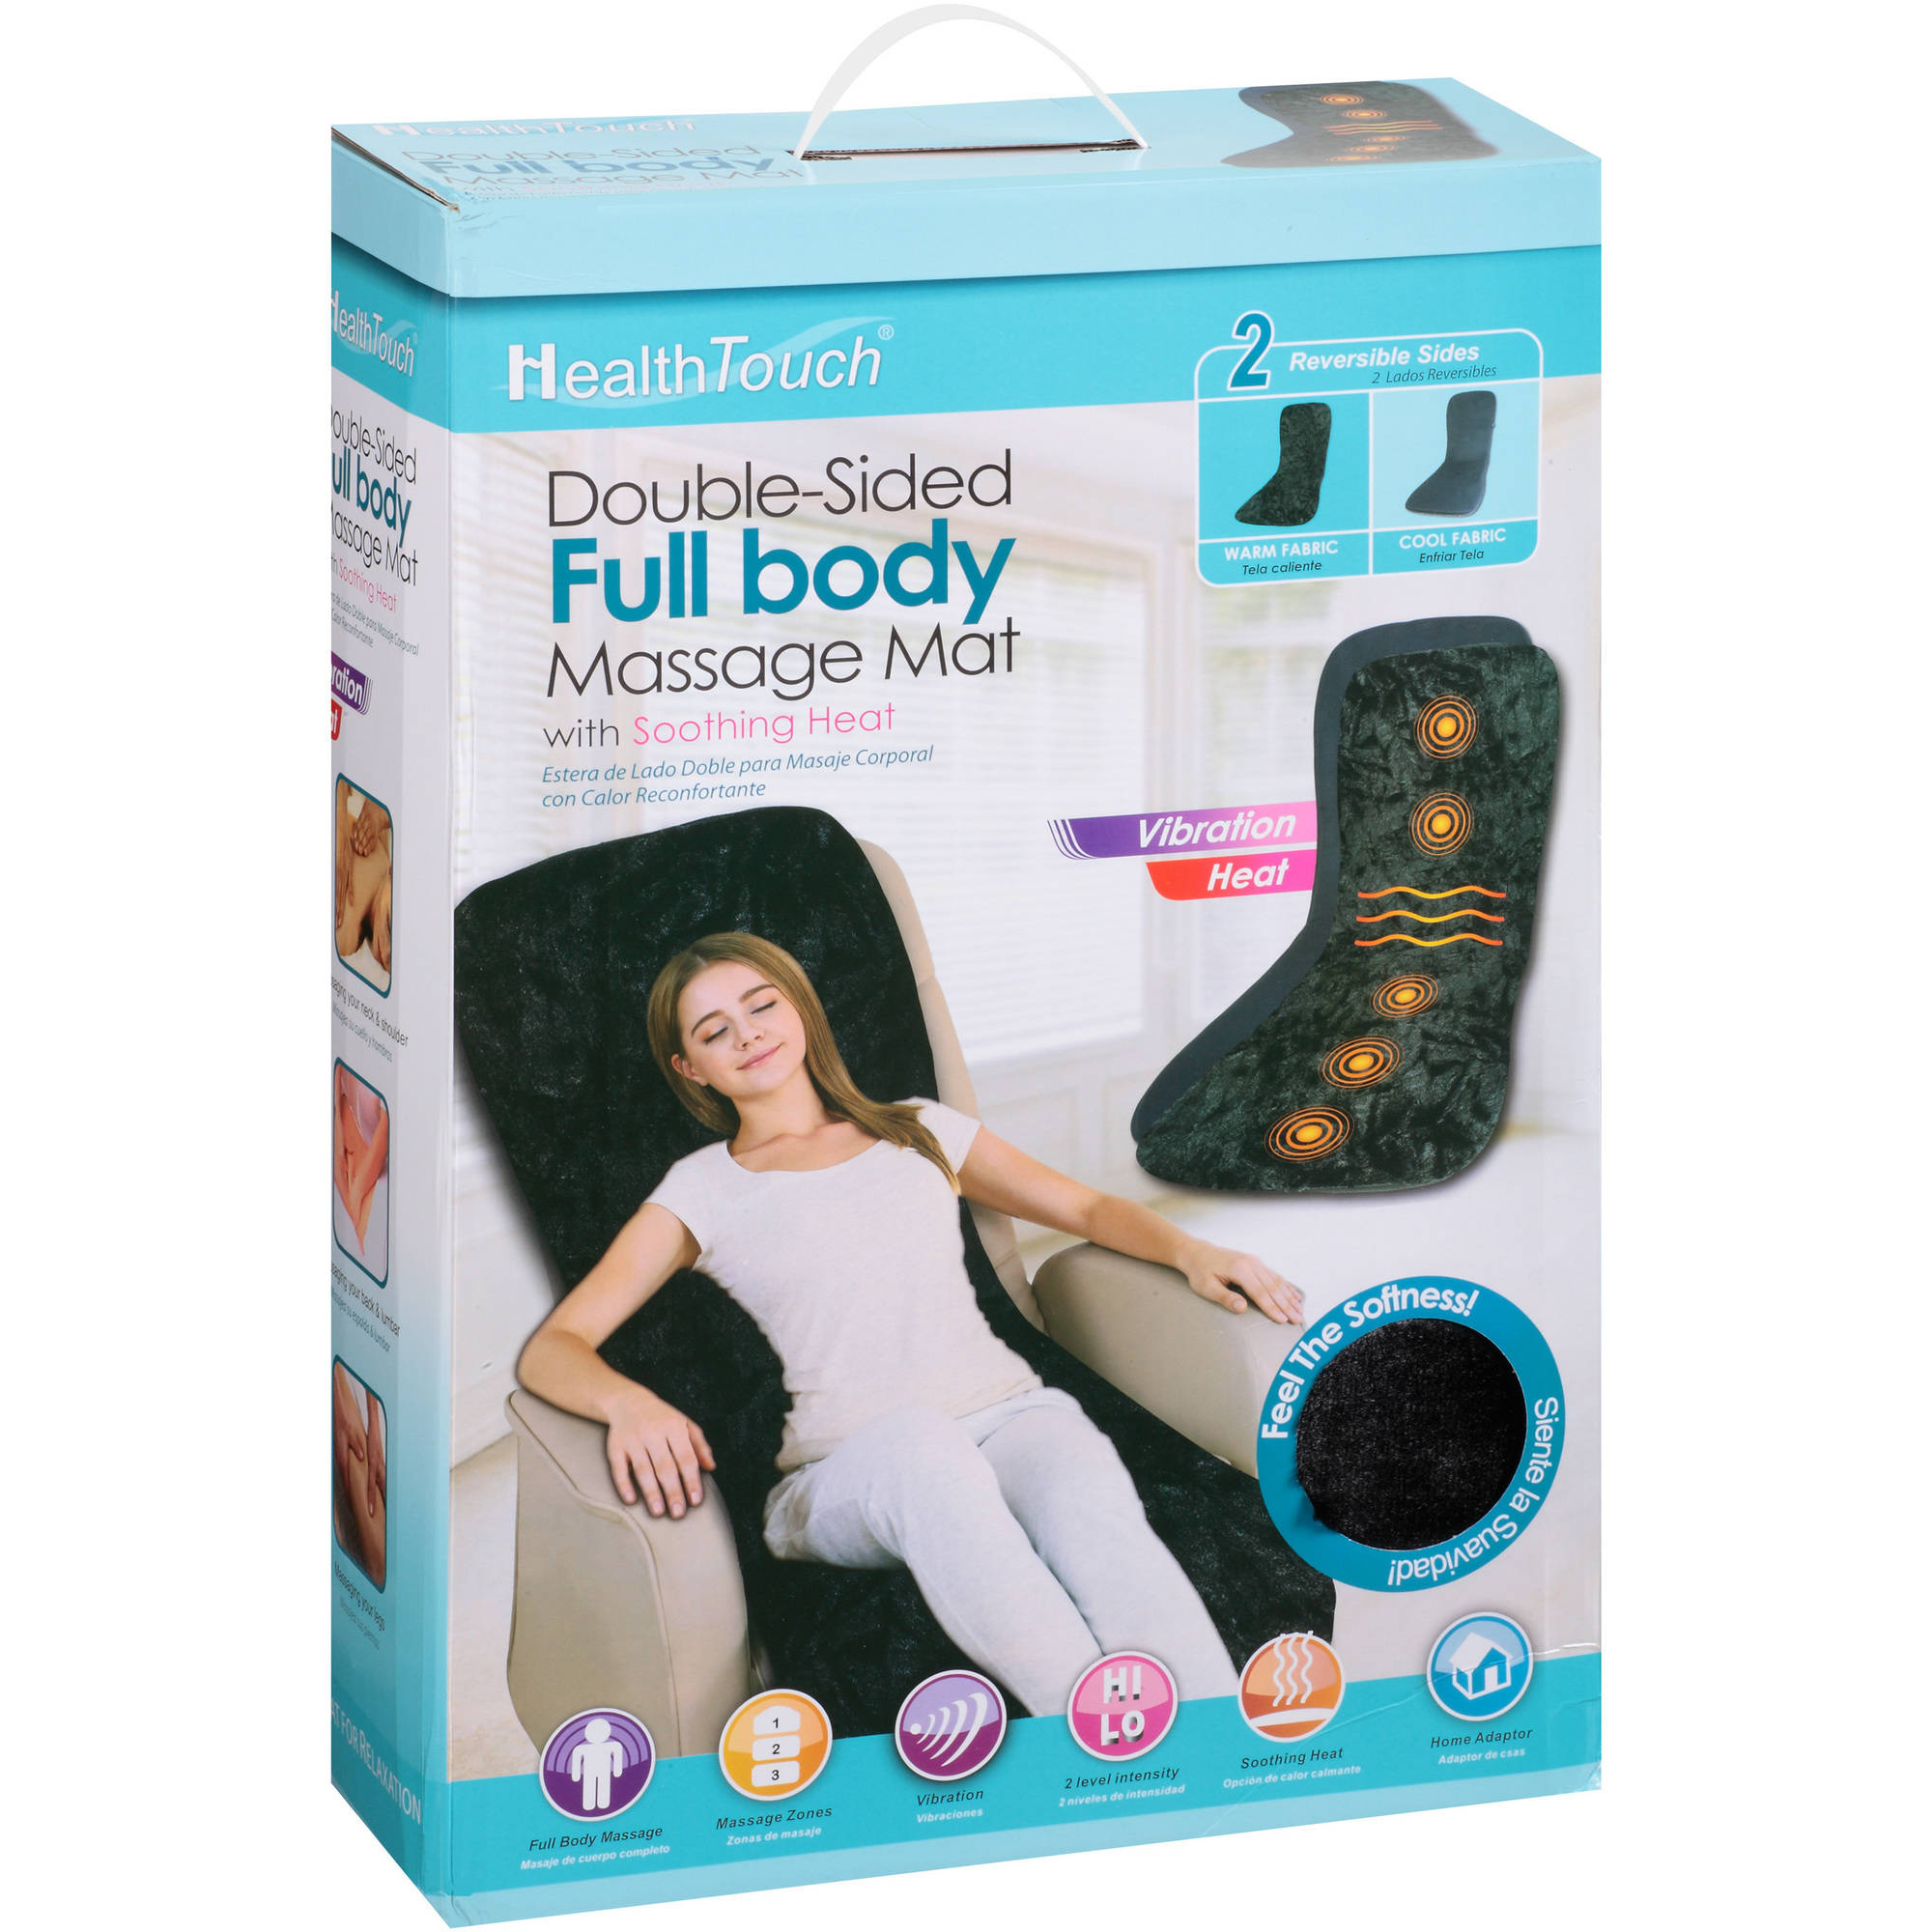 Where Can I Get Full Body Massage Health Touch Double Sided Full Body Massage Mat